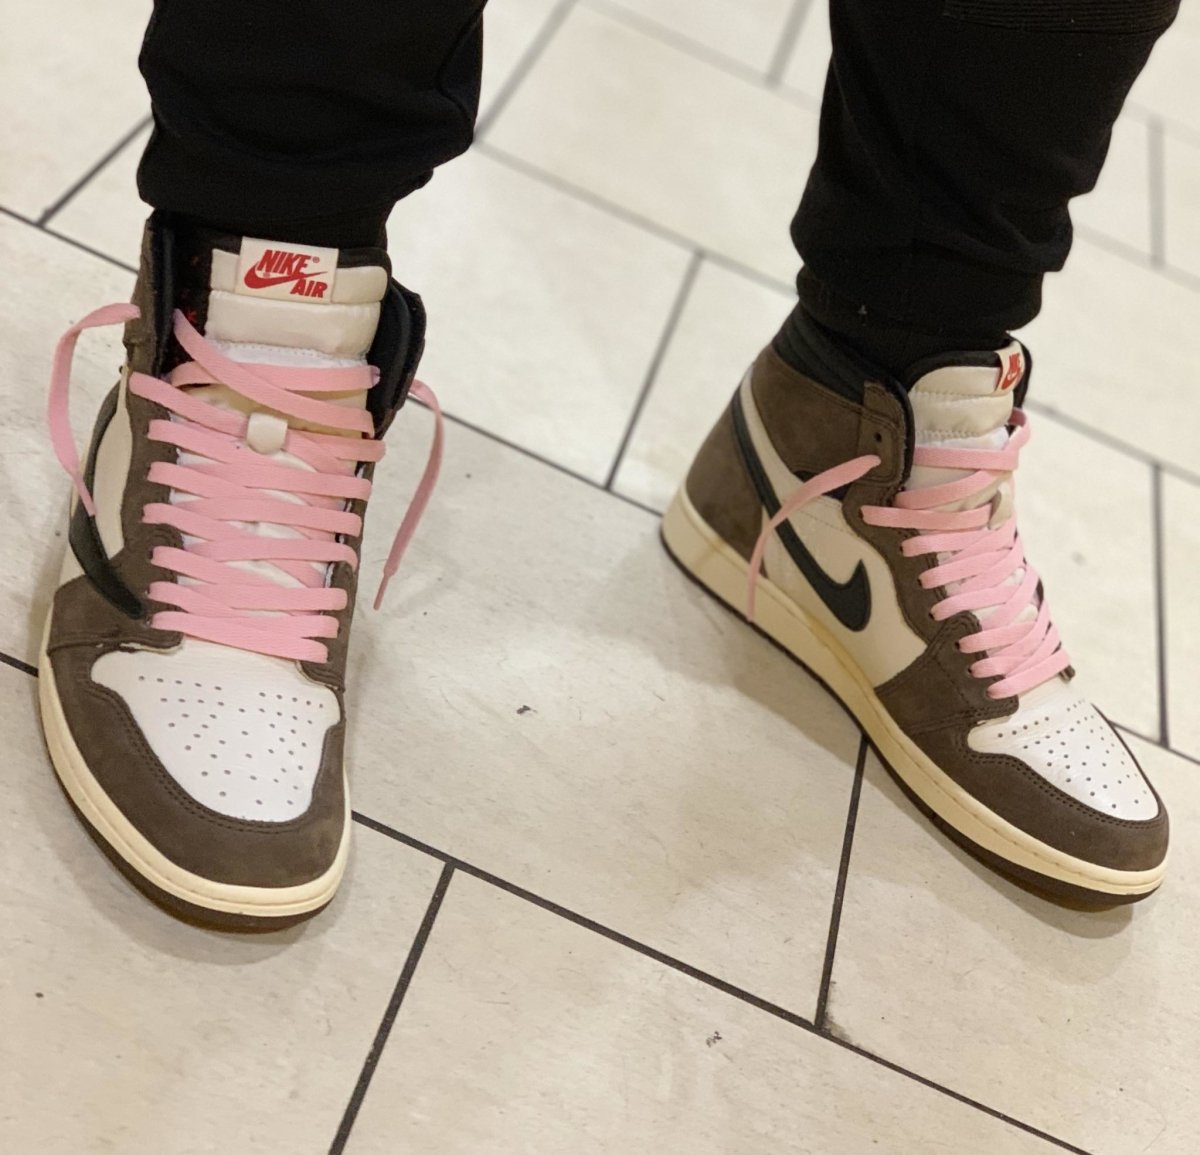 Waxed Cactus Jack Shoe Laces in 2 Colors